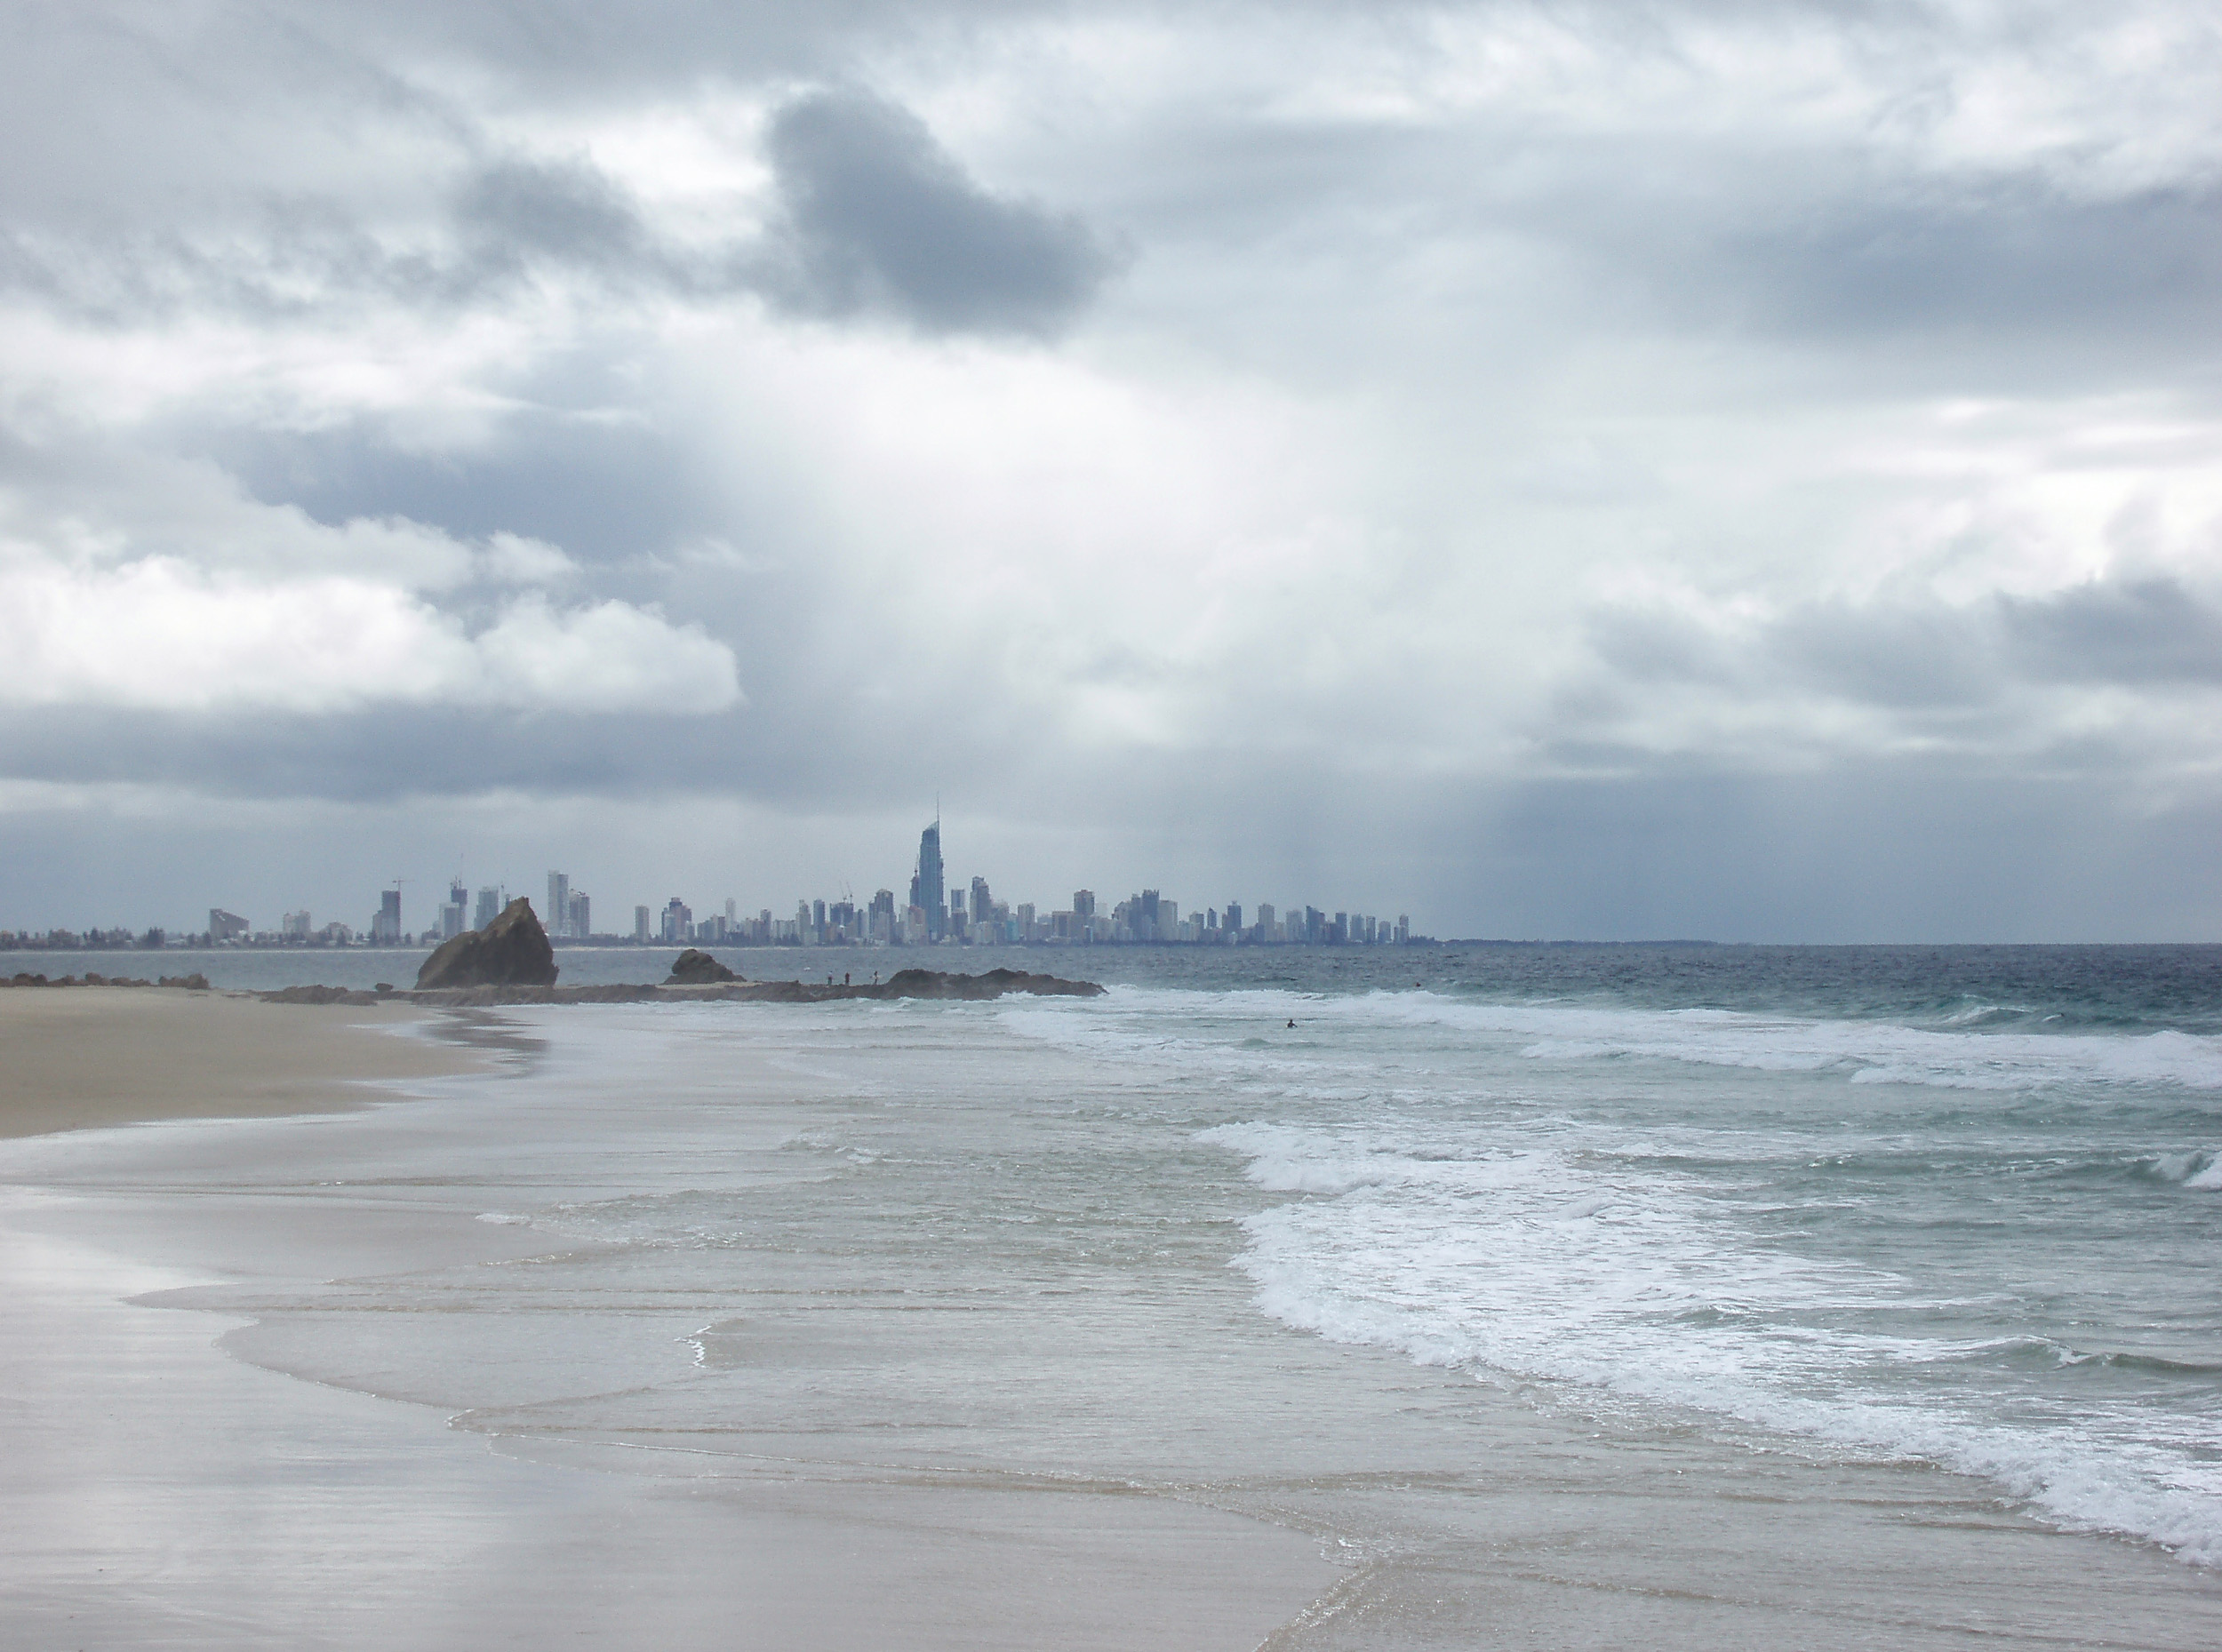 currumbin beach on a cloudy day with the high rise buildings of surfers paradise in the background, gold coast, QLD